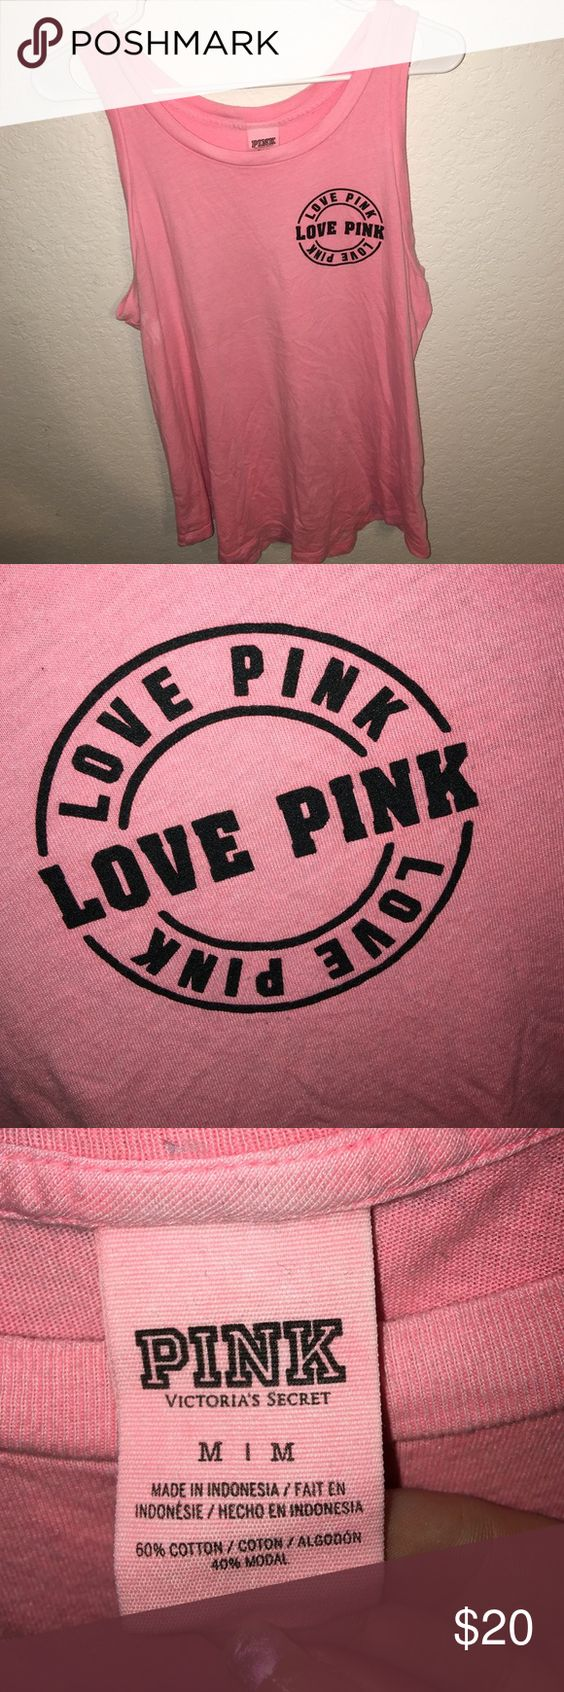 PINK tank top Size medium. Does have a small stain under left arm as shown. PINK Victoria's Secret Tops Tank Tops